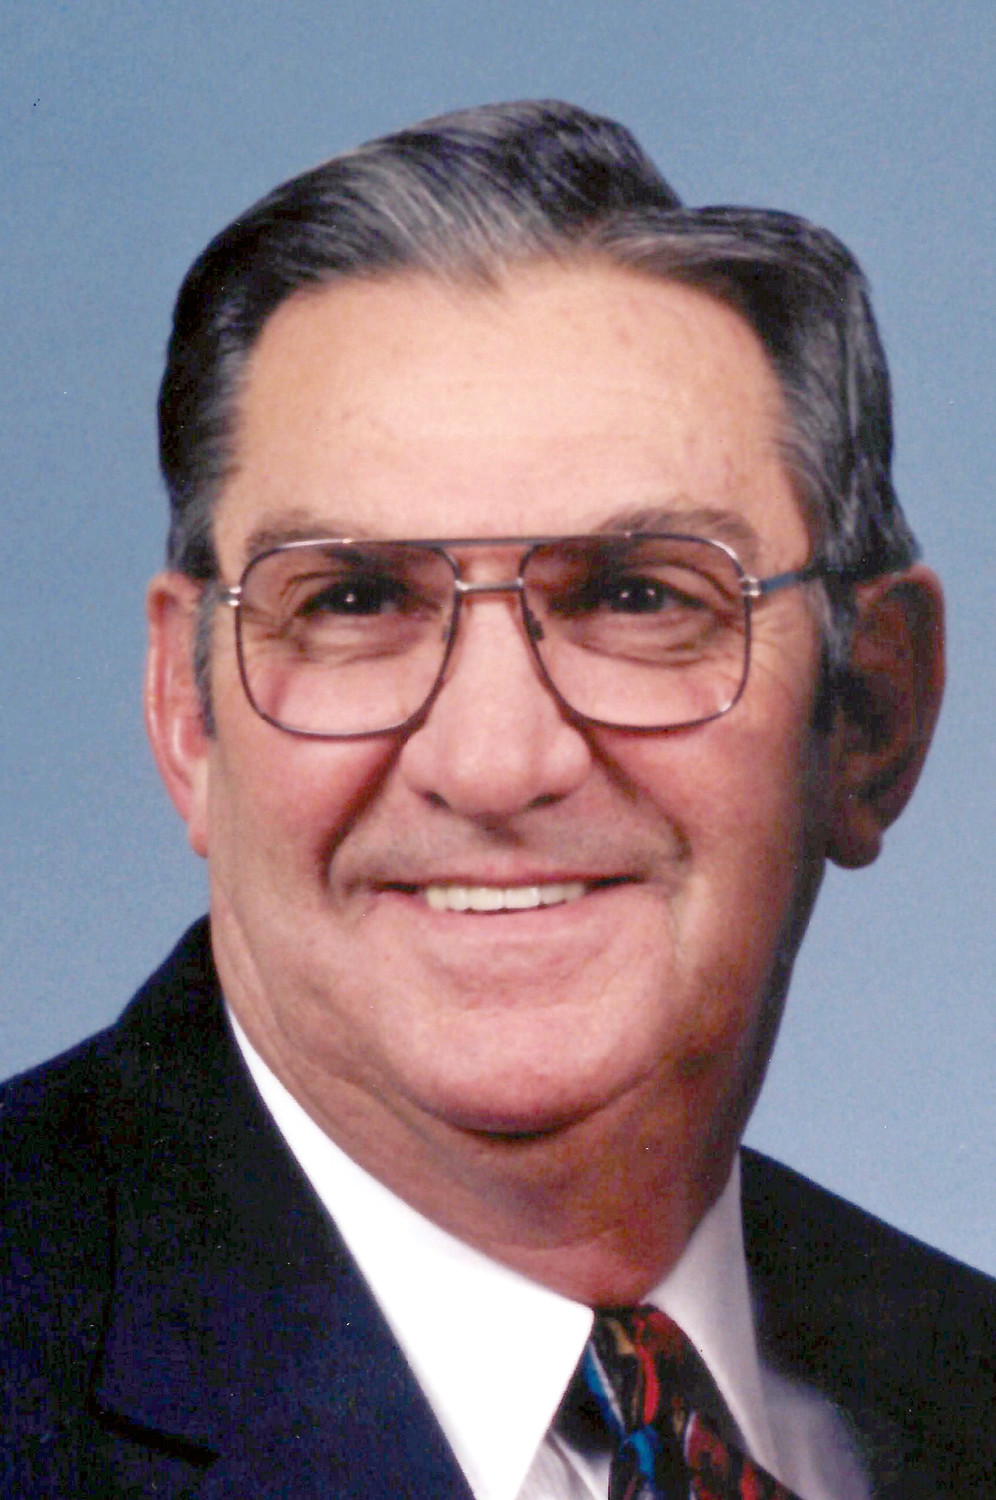 Wreck claims life of longtime educator | Herald Citizen